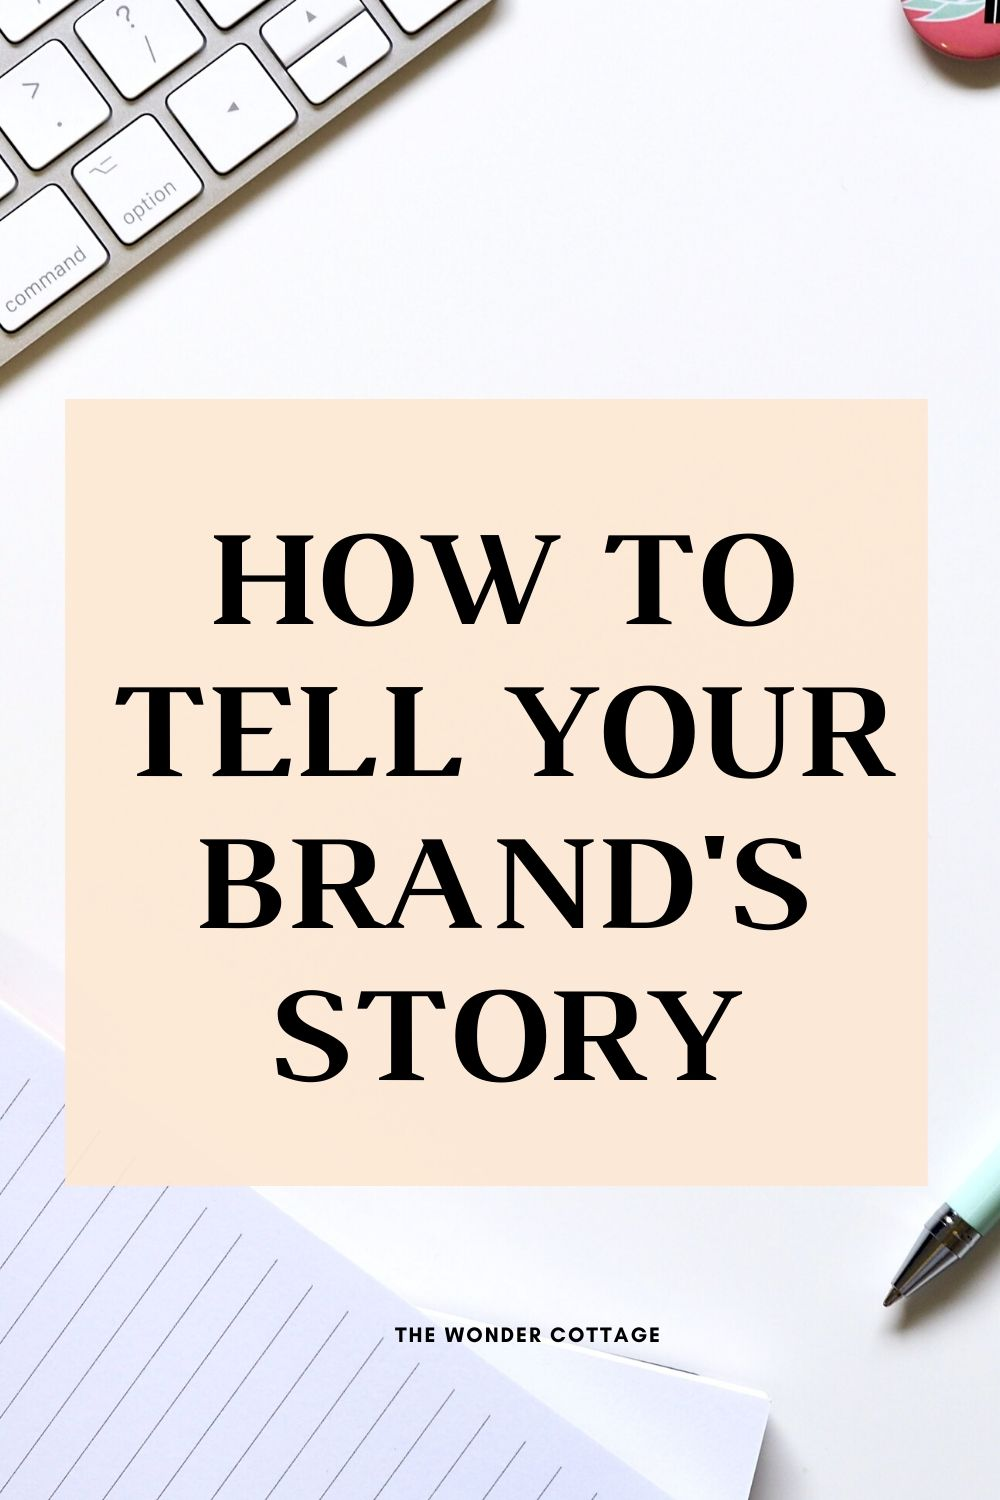 How to attract customers by telling your brand's story